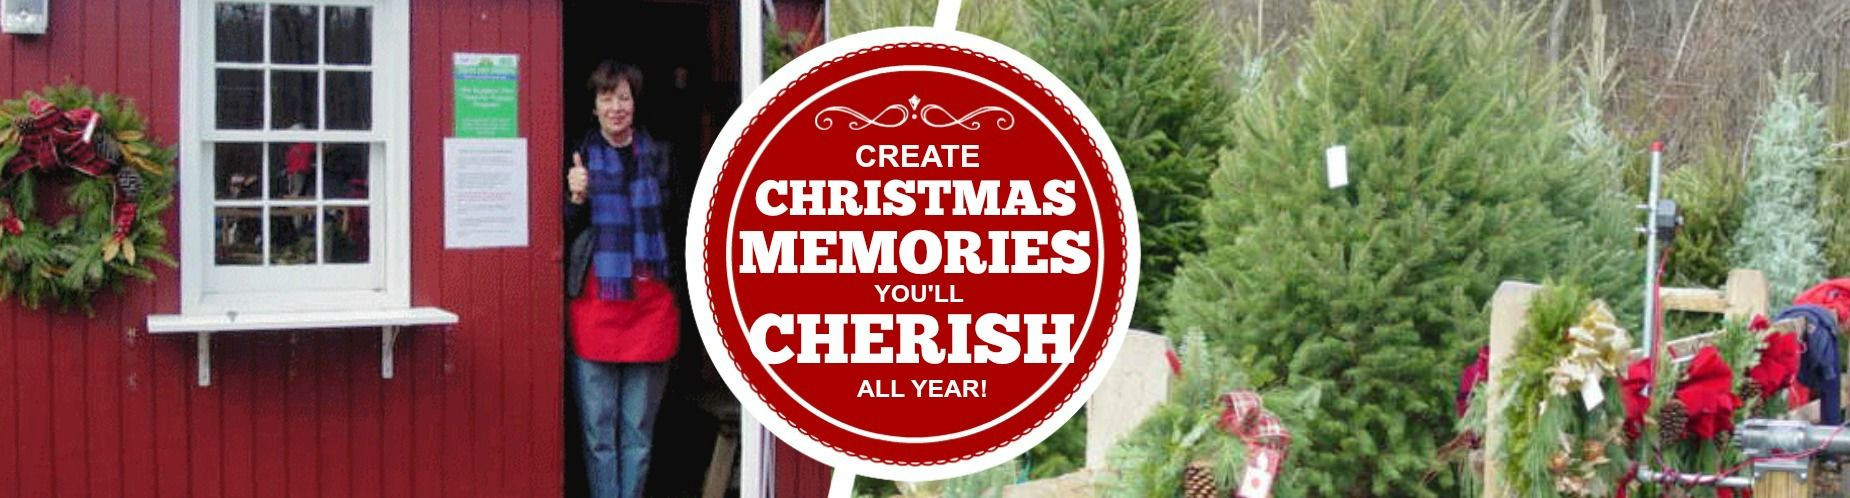 Create Christmas Memories